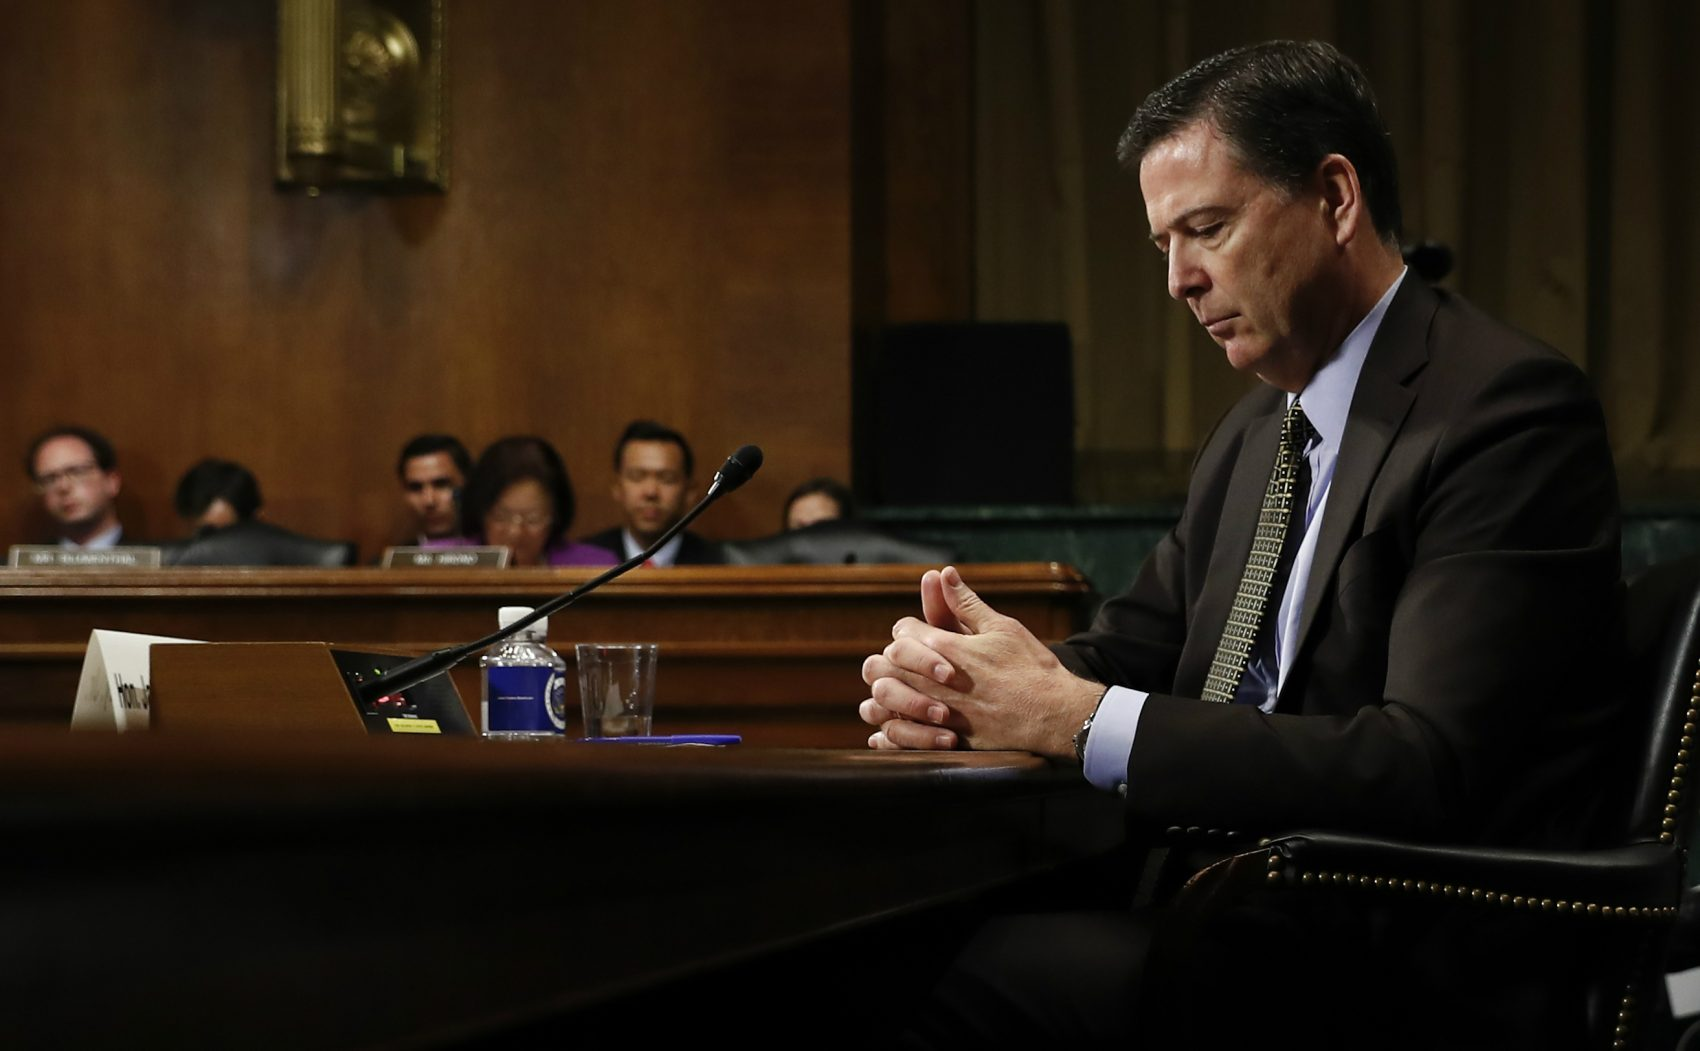 Congressional Republicans must confront whether they are willing to defend a corrupt president, or the institutions of American democracy, writes Steve Almond. Pictured: On Wednesday, May 3, 2017, then-FBI Director James Comey pauses as he testifies on Capitol Hill before a Senate Judiciary Committee hearing. President Donald Trump abruptly fired Comey on May 9. (Carolyn Kaster/AP)